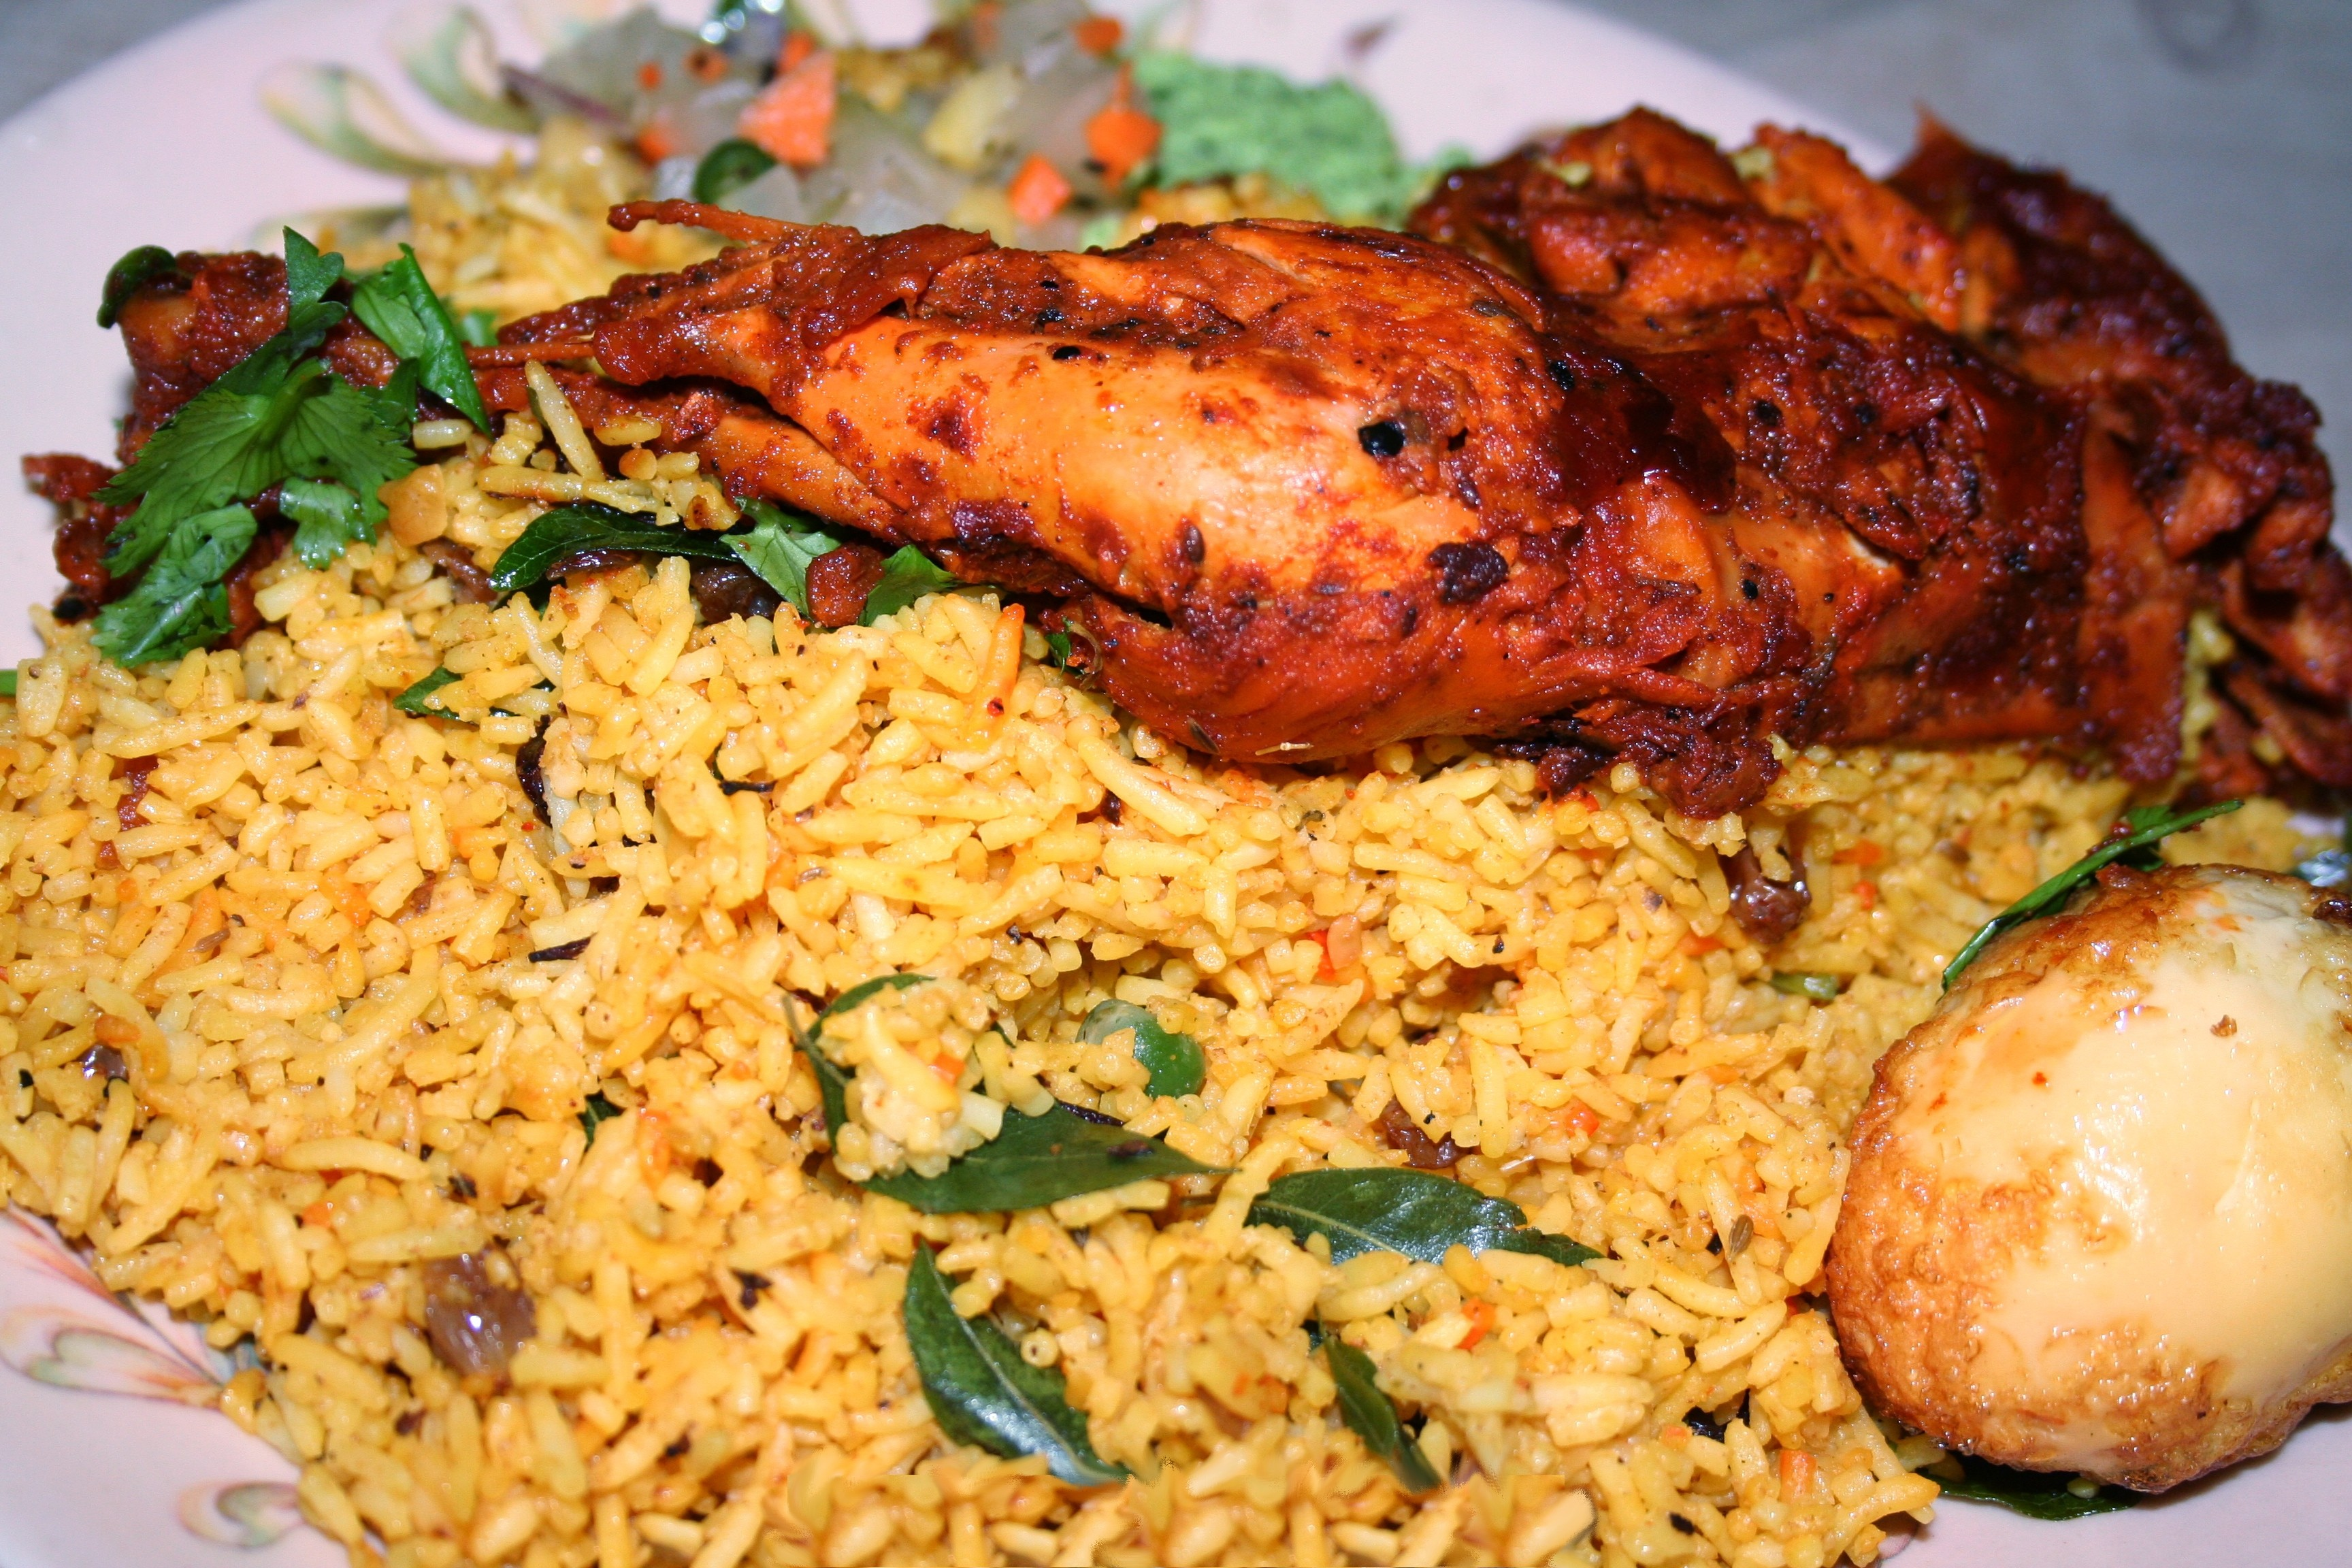 File:Chicken Biryani.jpg - Wikipedia